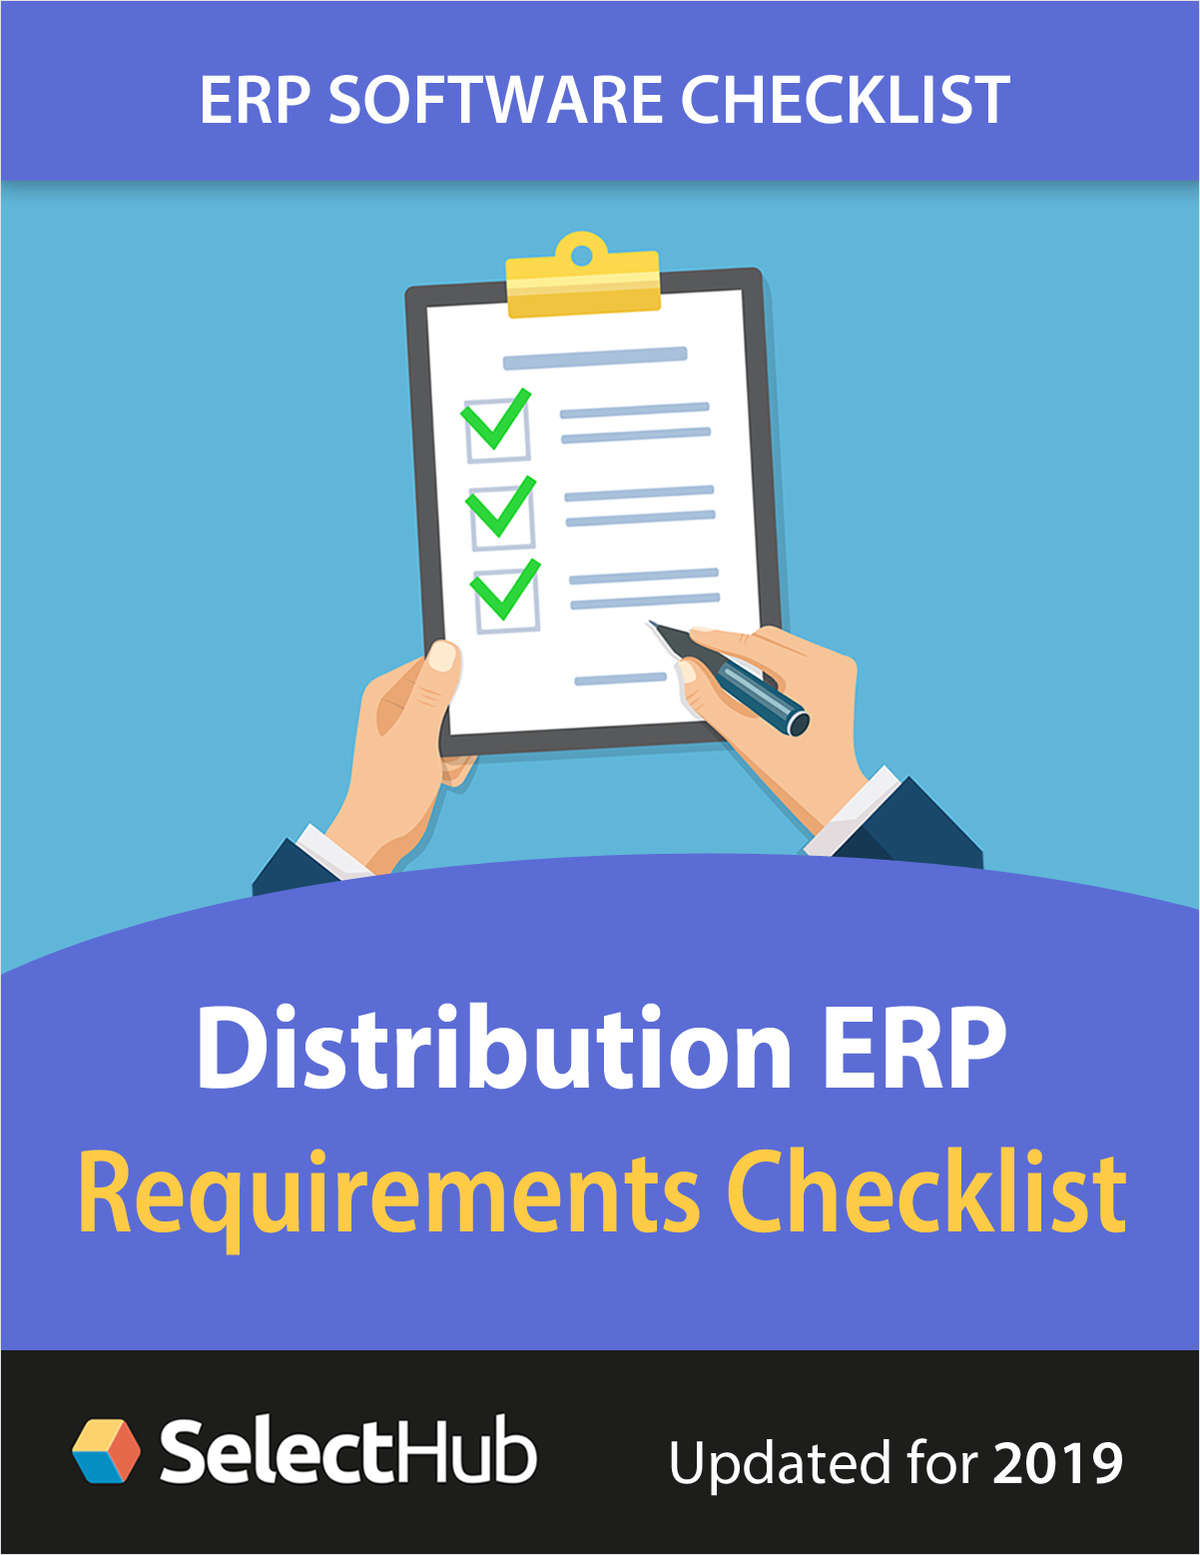 Top Distribution ERP Features & Requirements Checklist